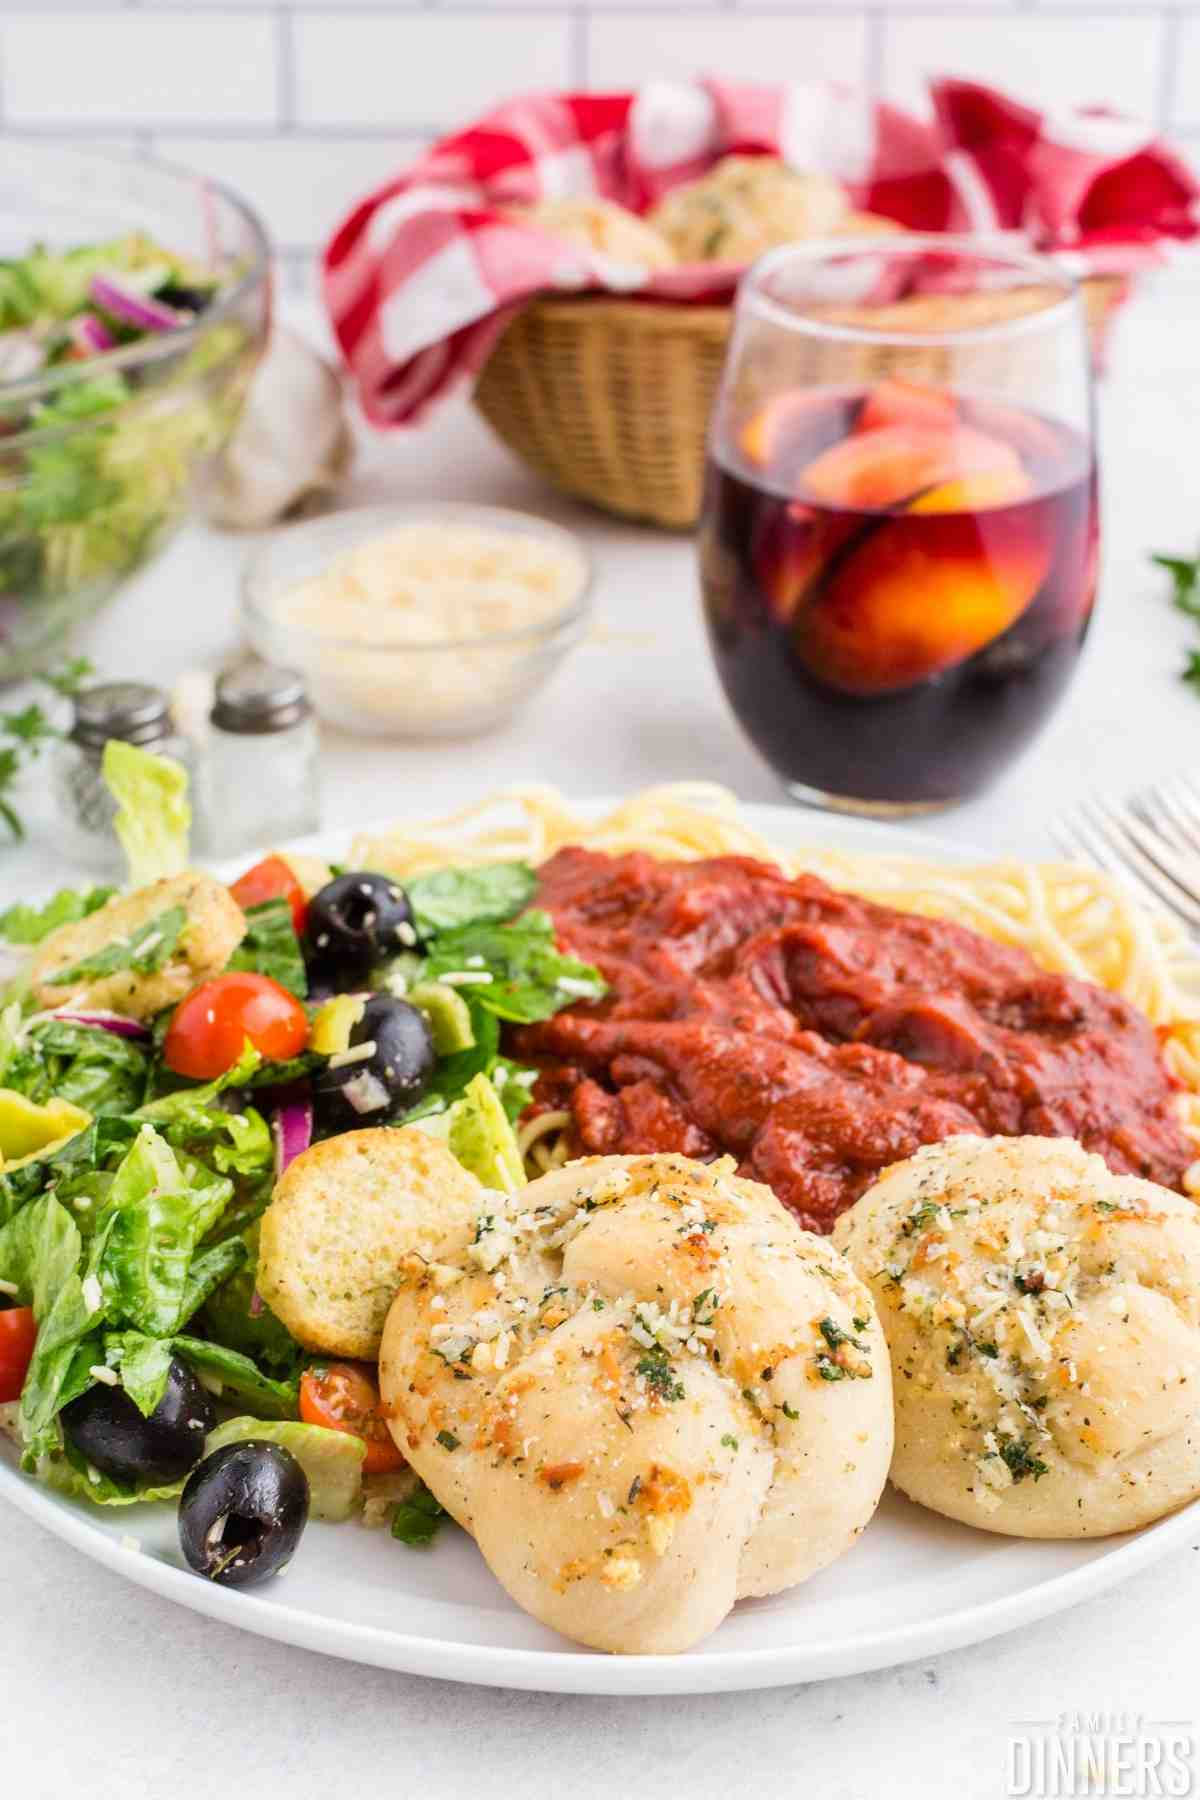 plate full of italian meal with salad, spaghetti, garlic knots and sangria.